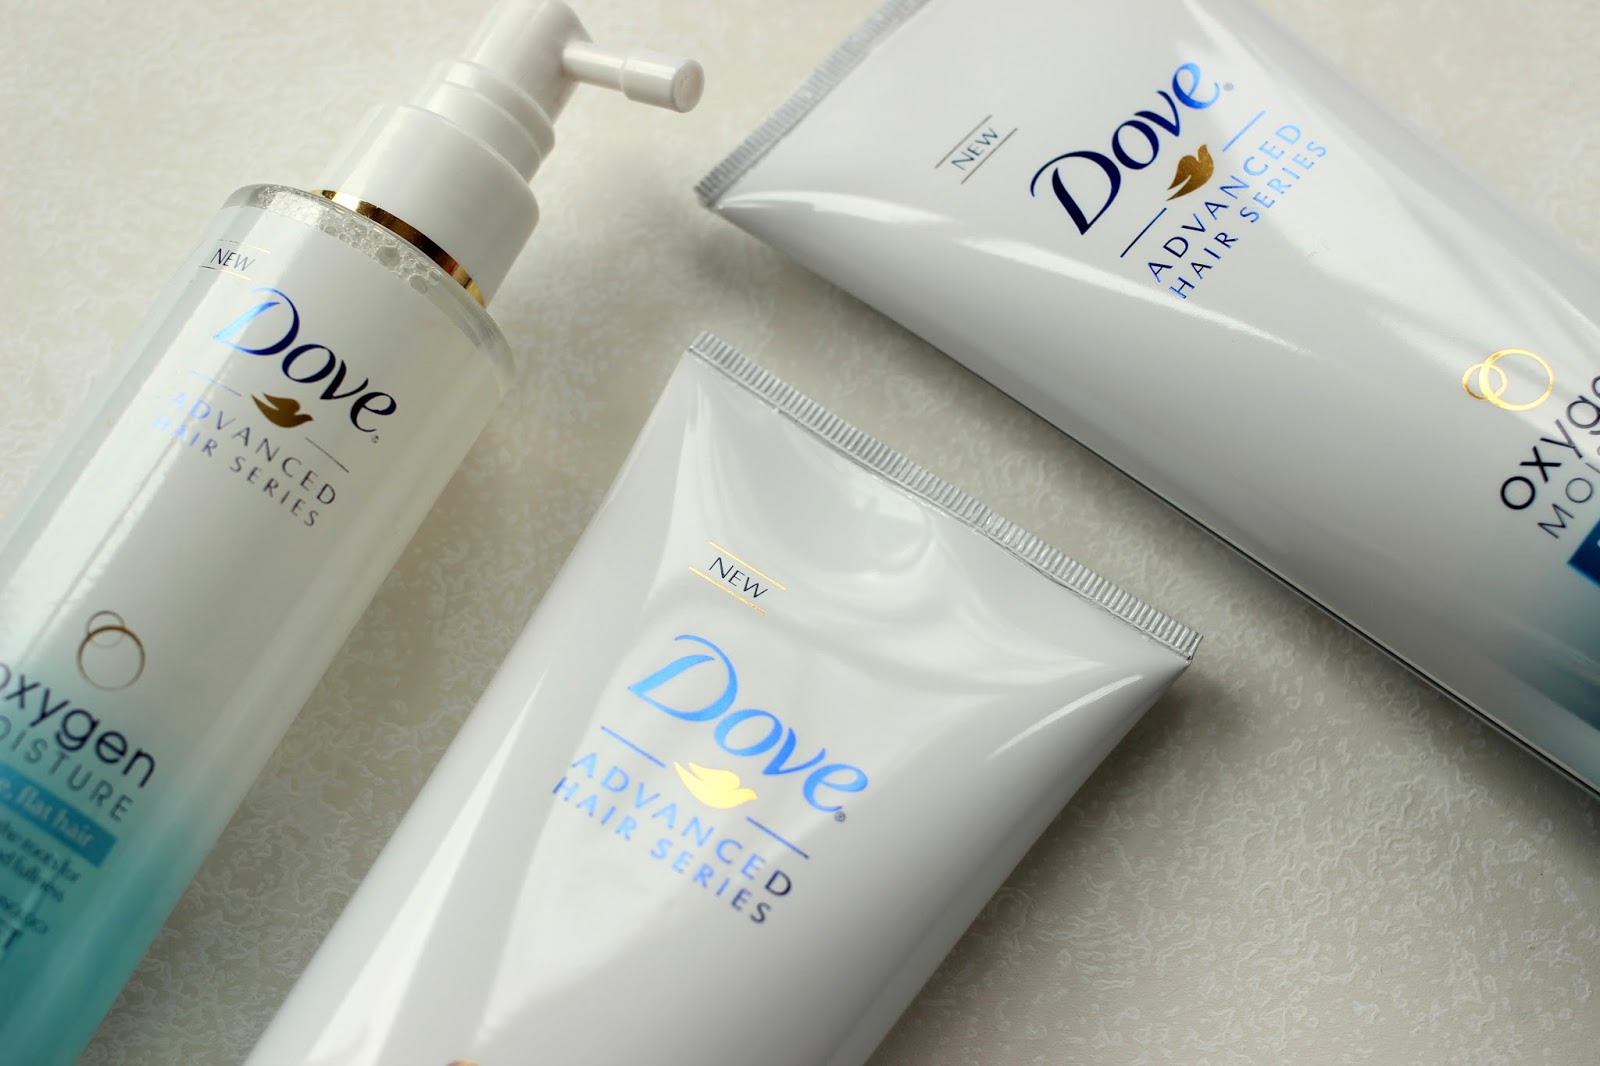 Win A Year's Supply Of Dove Haircare